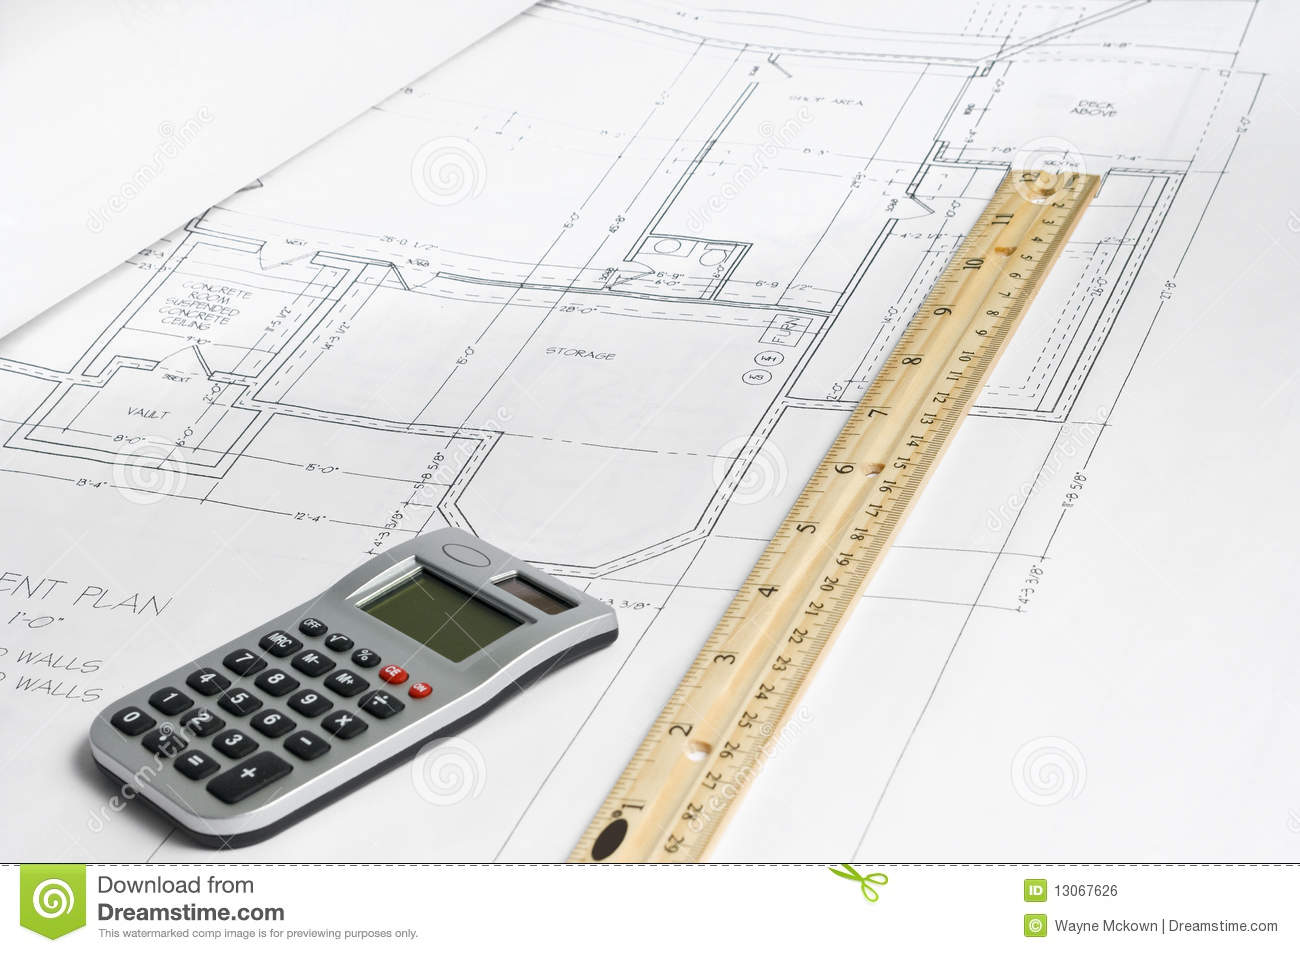 wood truss diagram with calculator,and ruler.